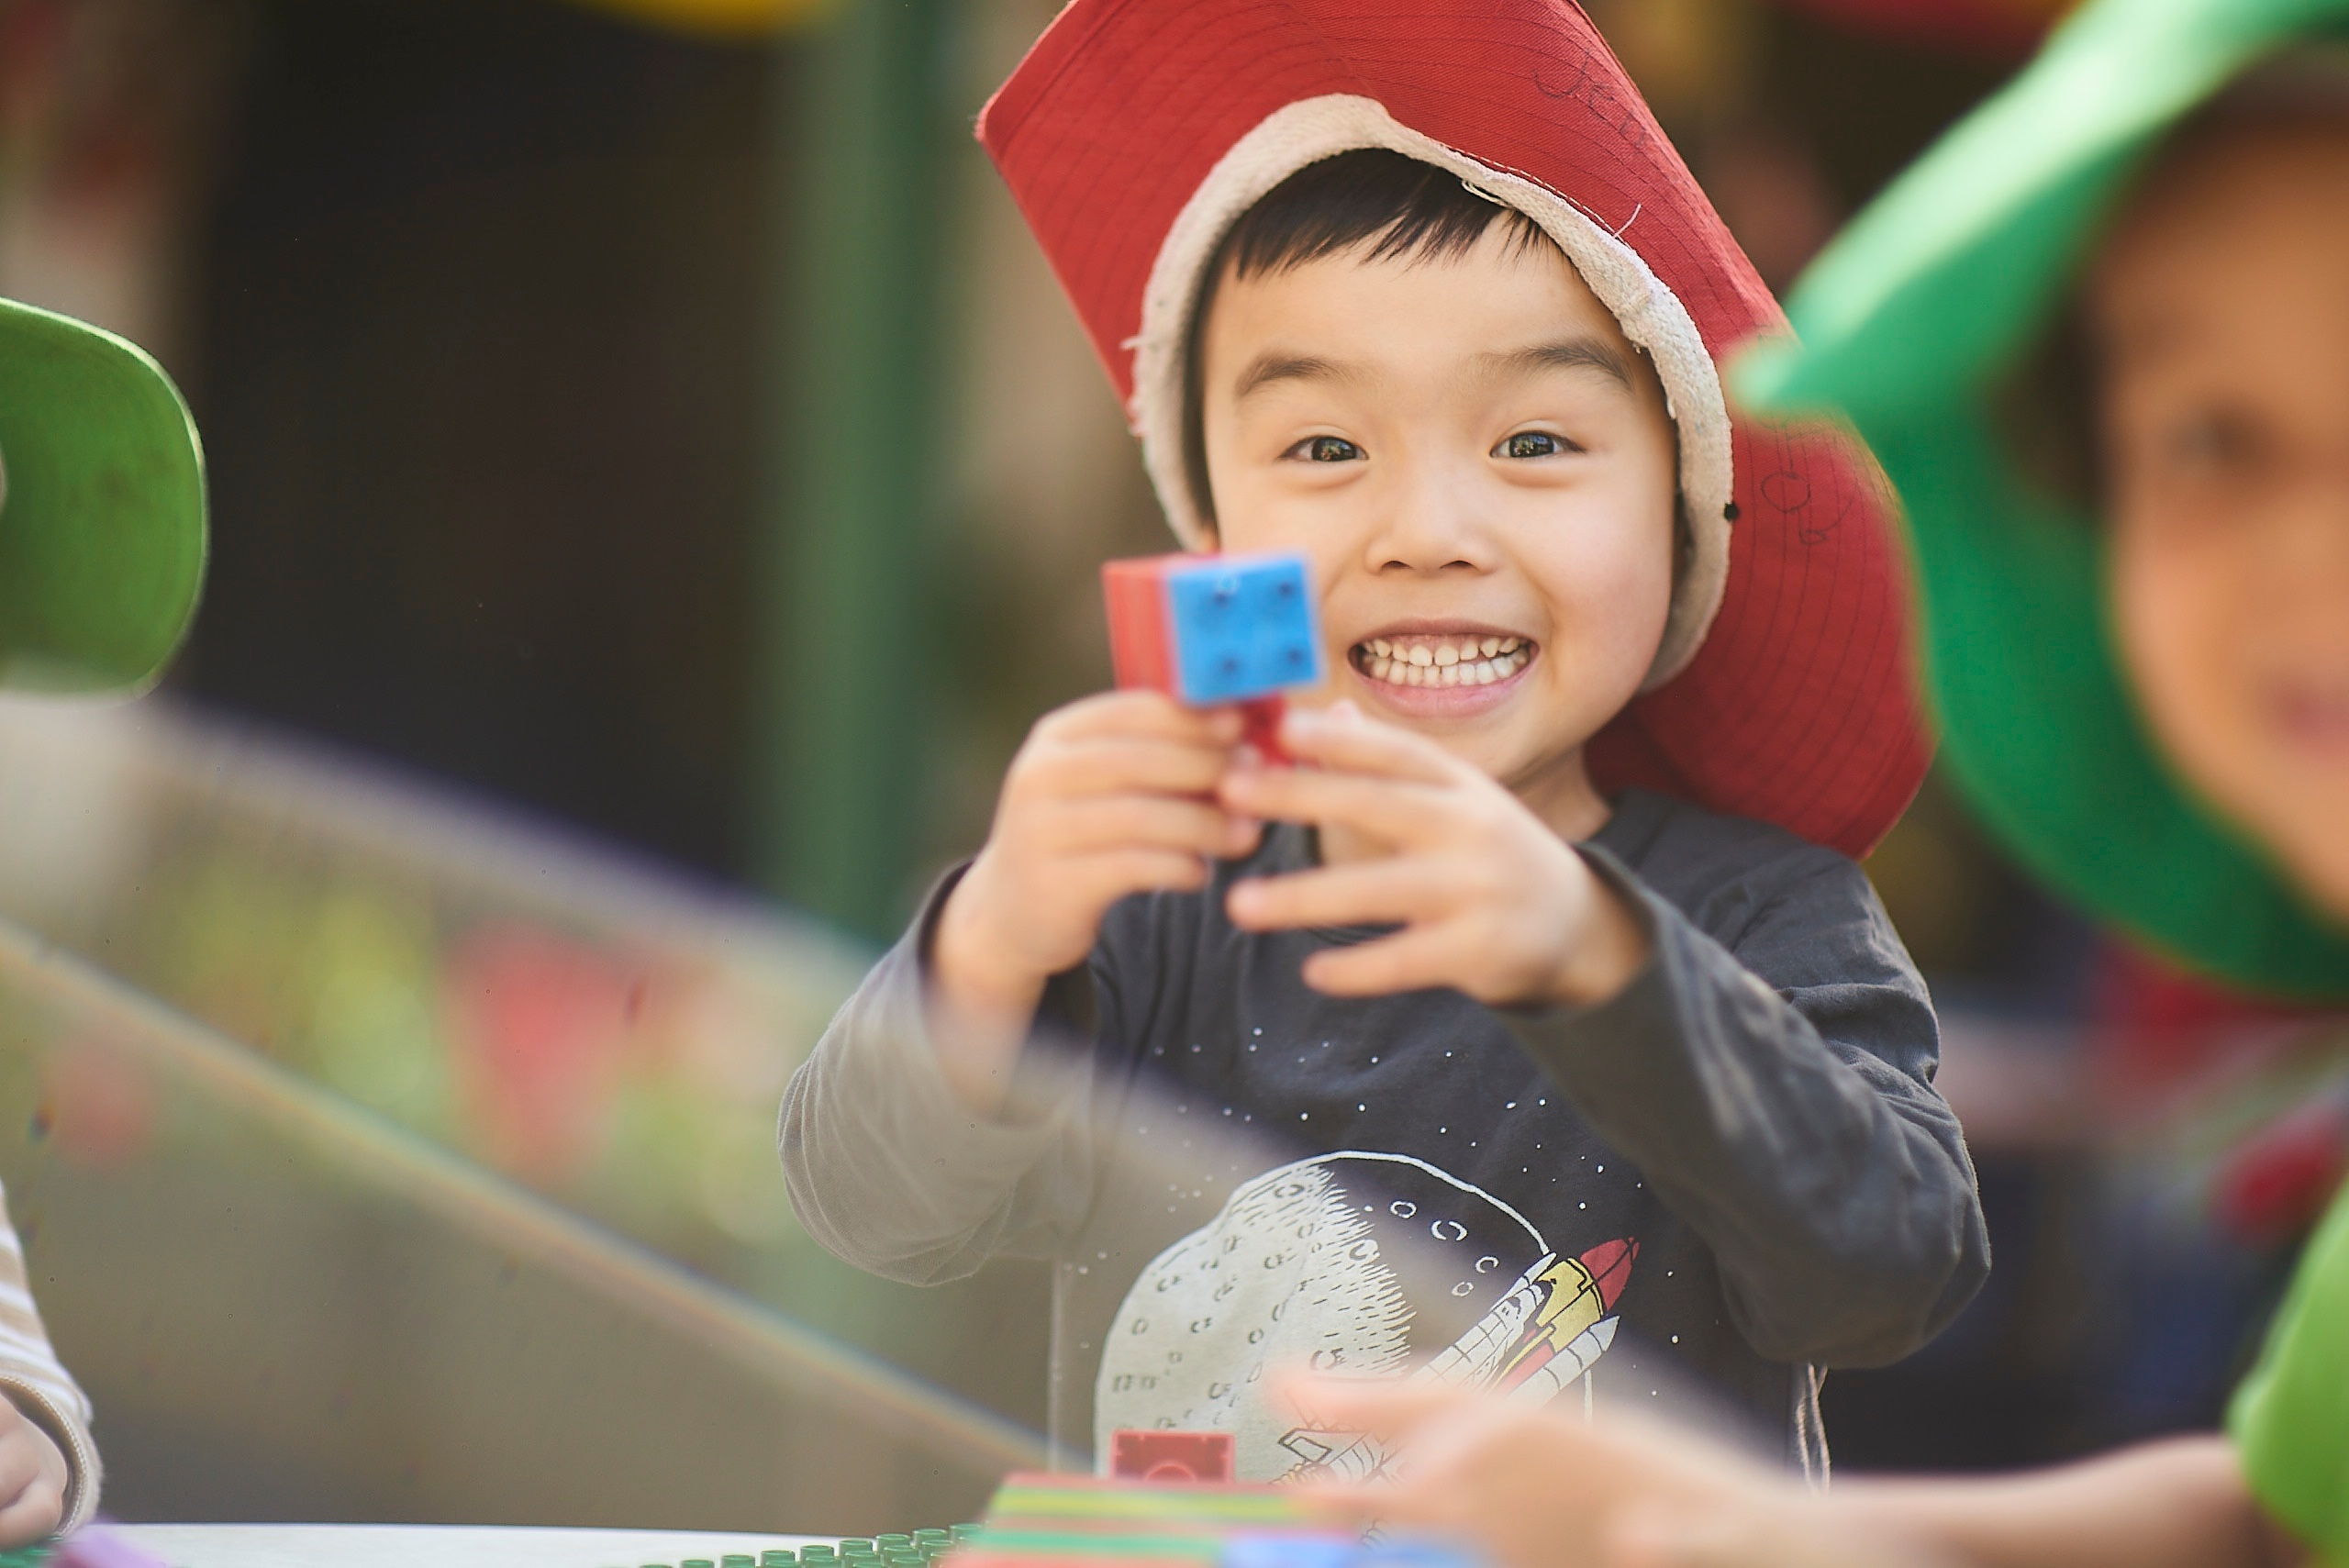 Is childcare good for my child's cognitive development?